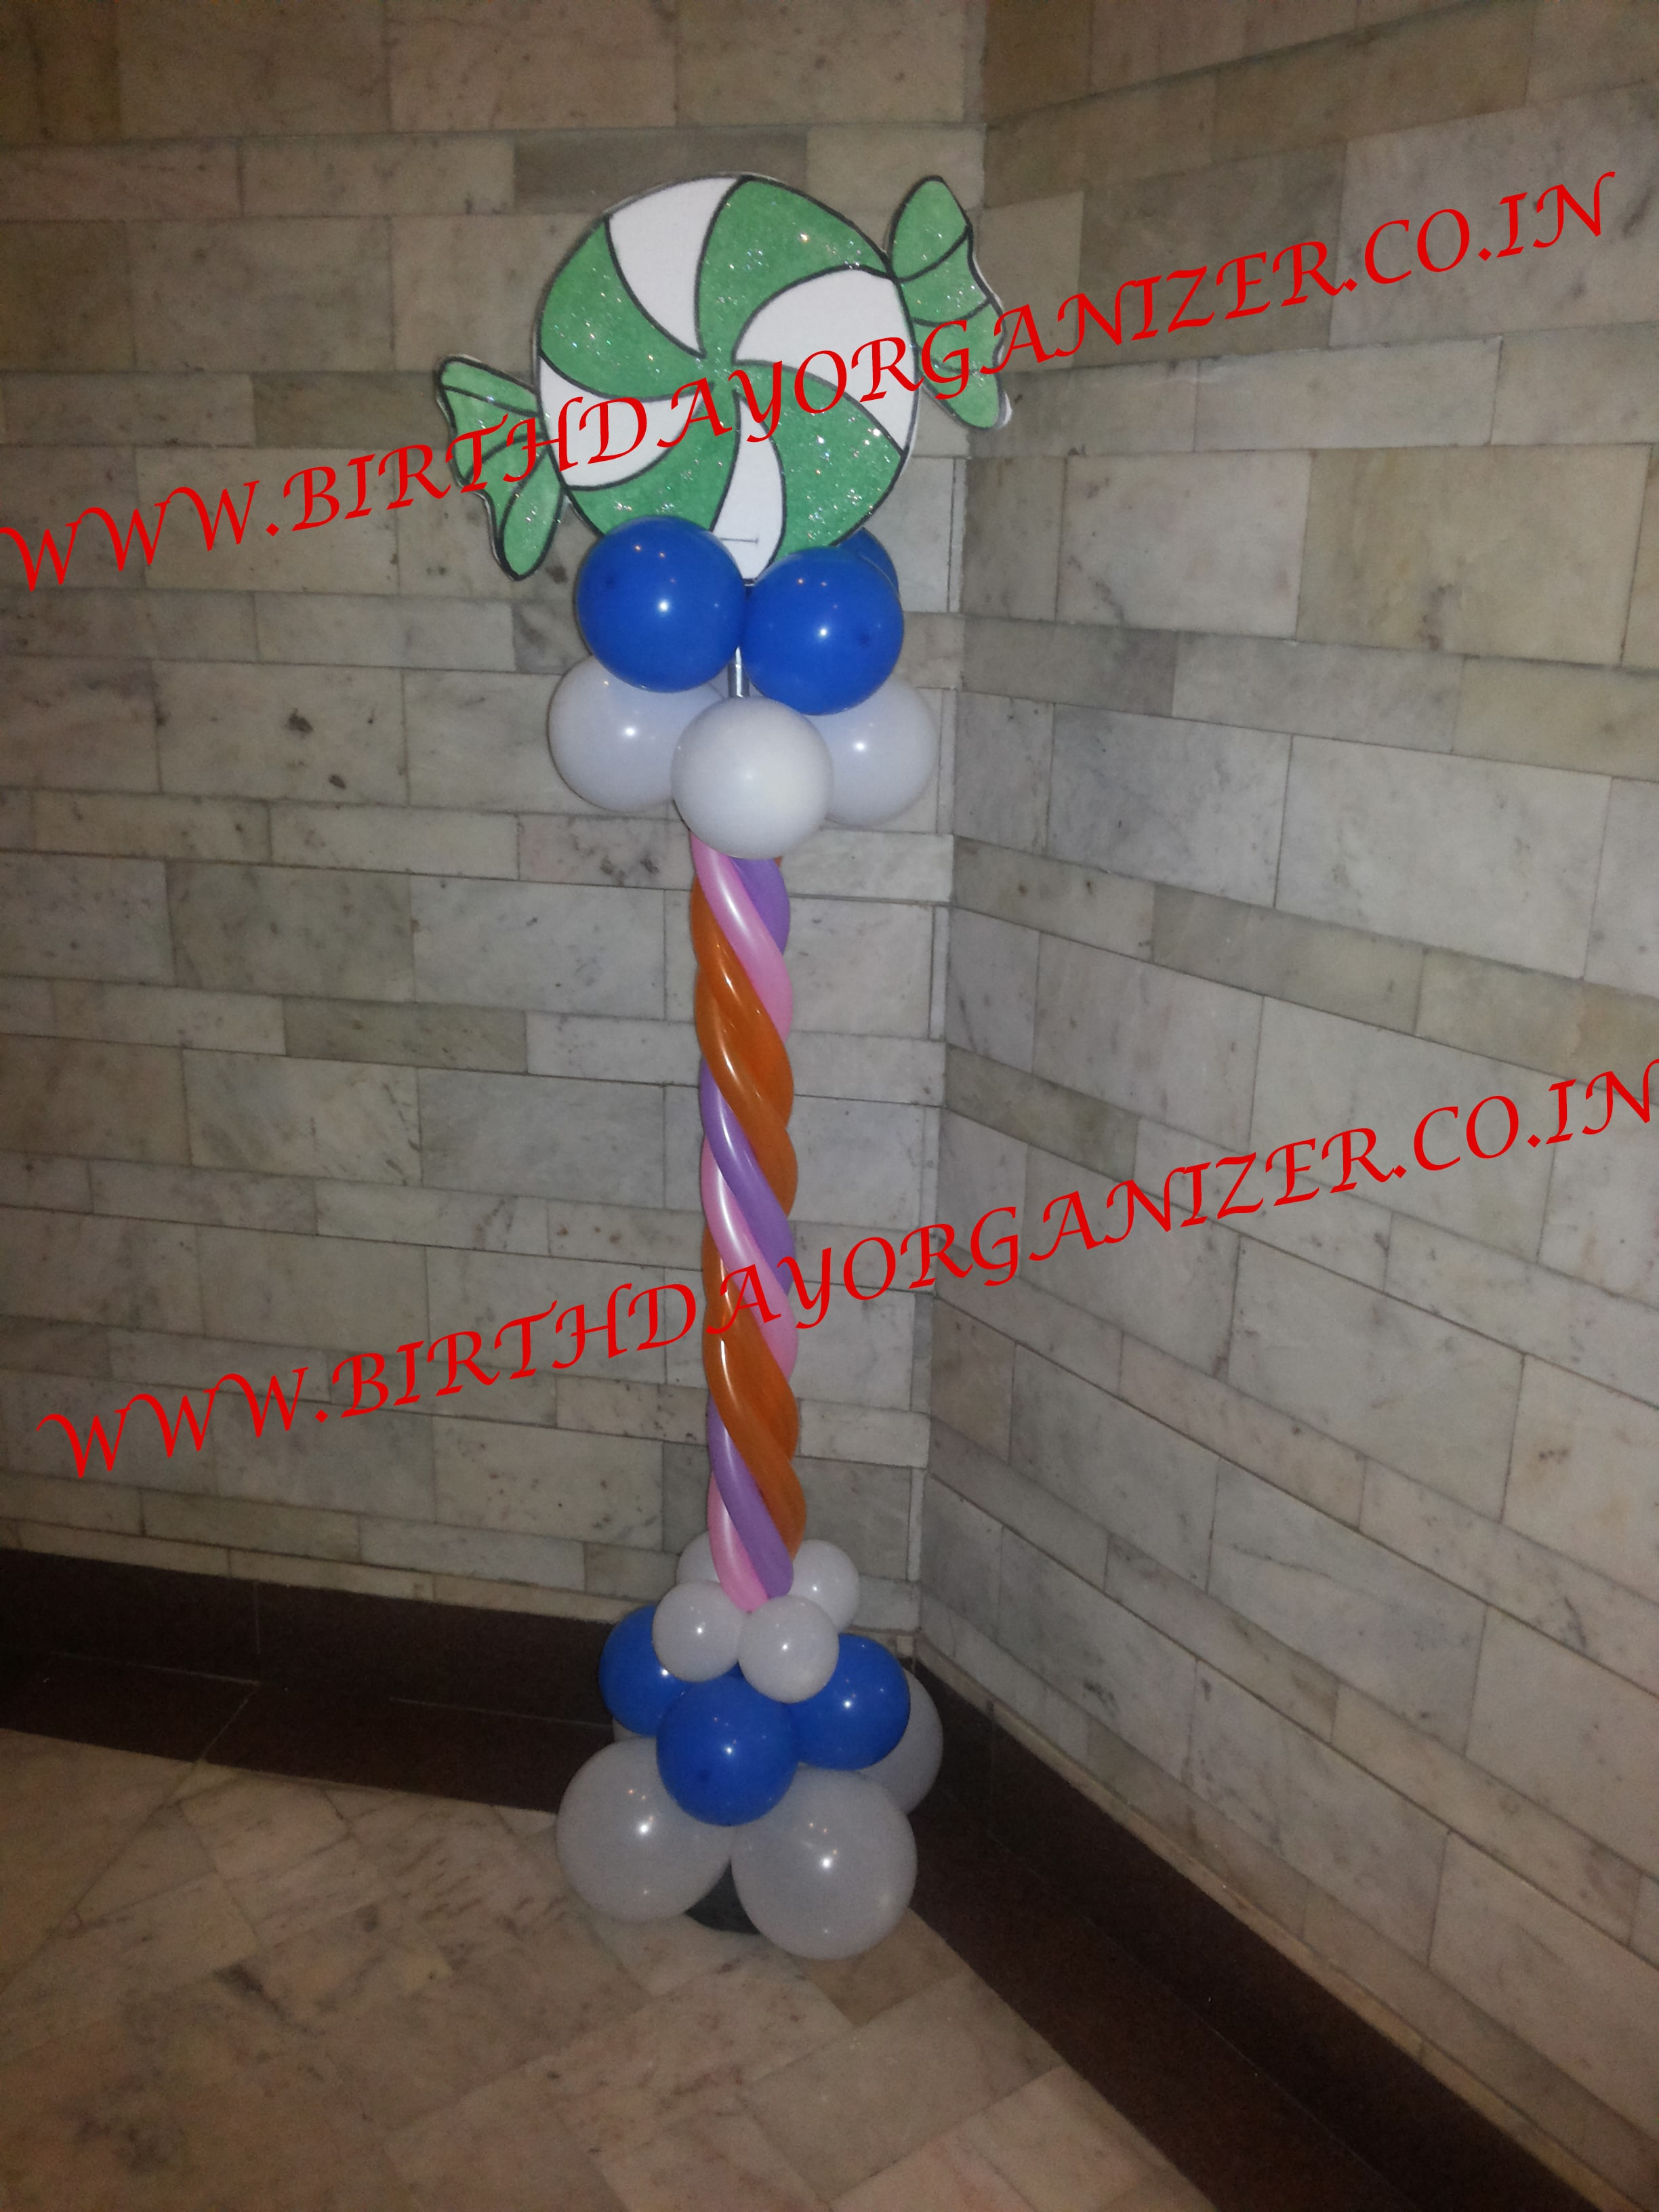 party planner in gurgaon, birthday party planner in gurgaon, birthday party ideas in gurgaon